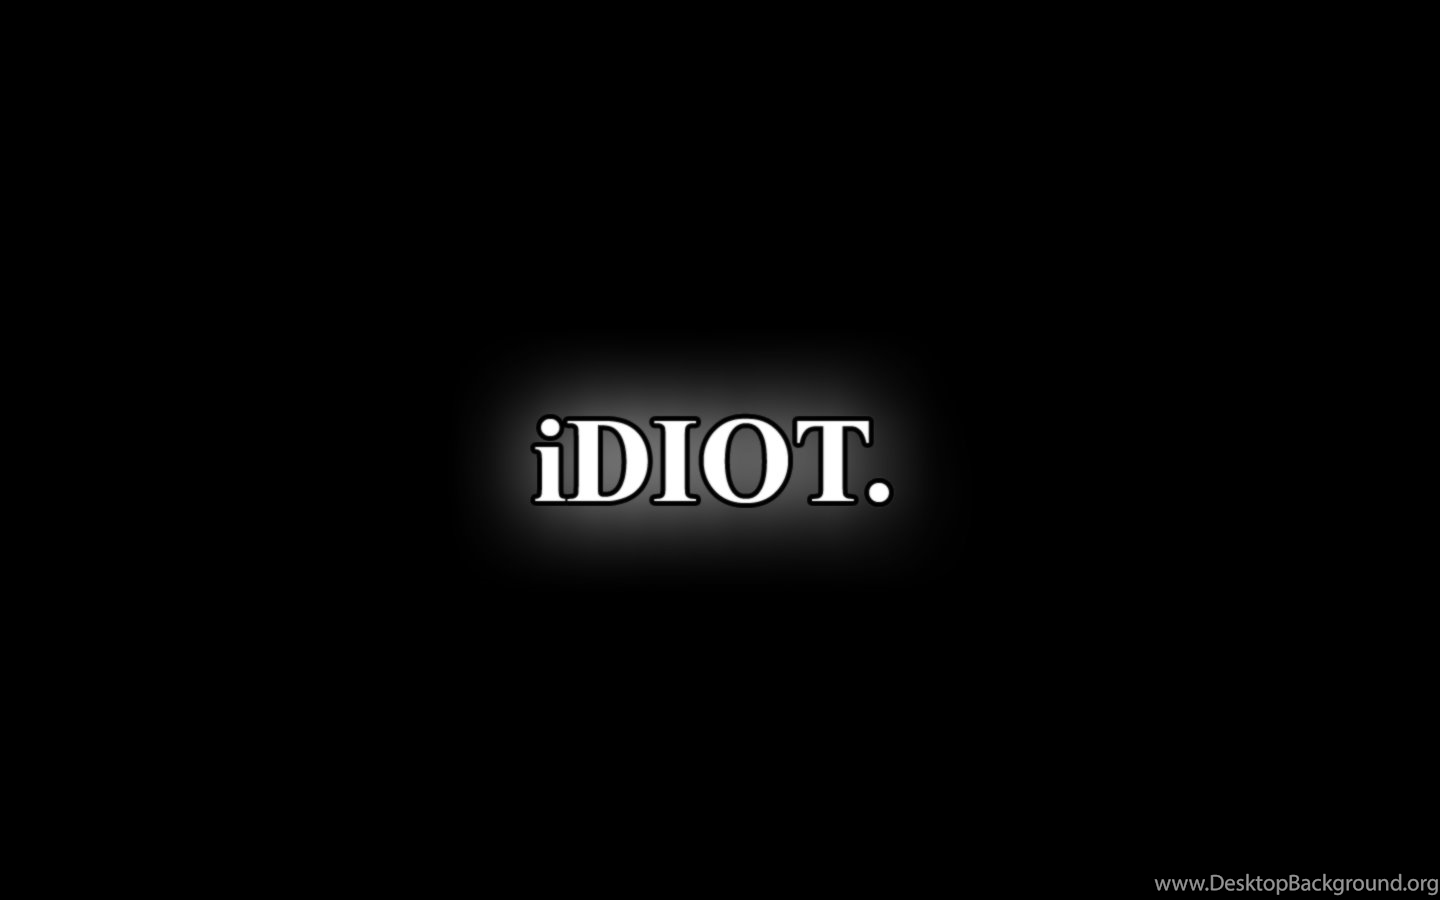 Funny idiot quotes wallpapers hd desktop background - Funny quotes in hd ...